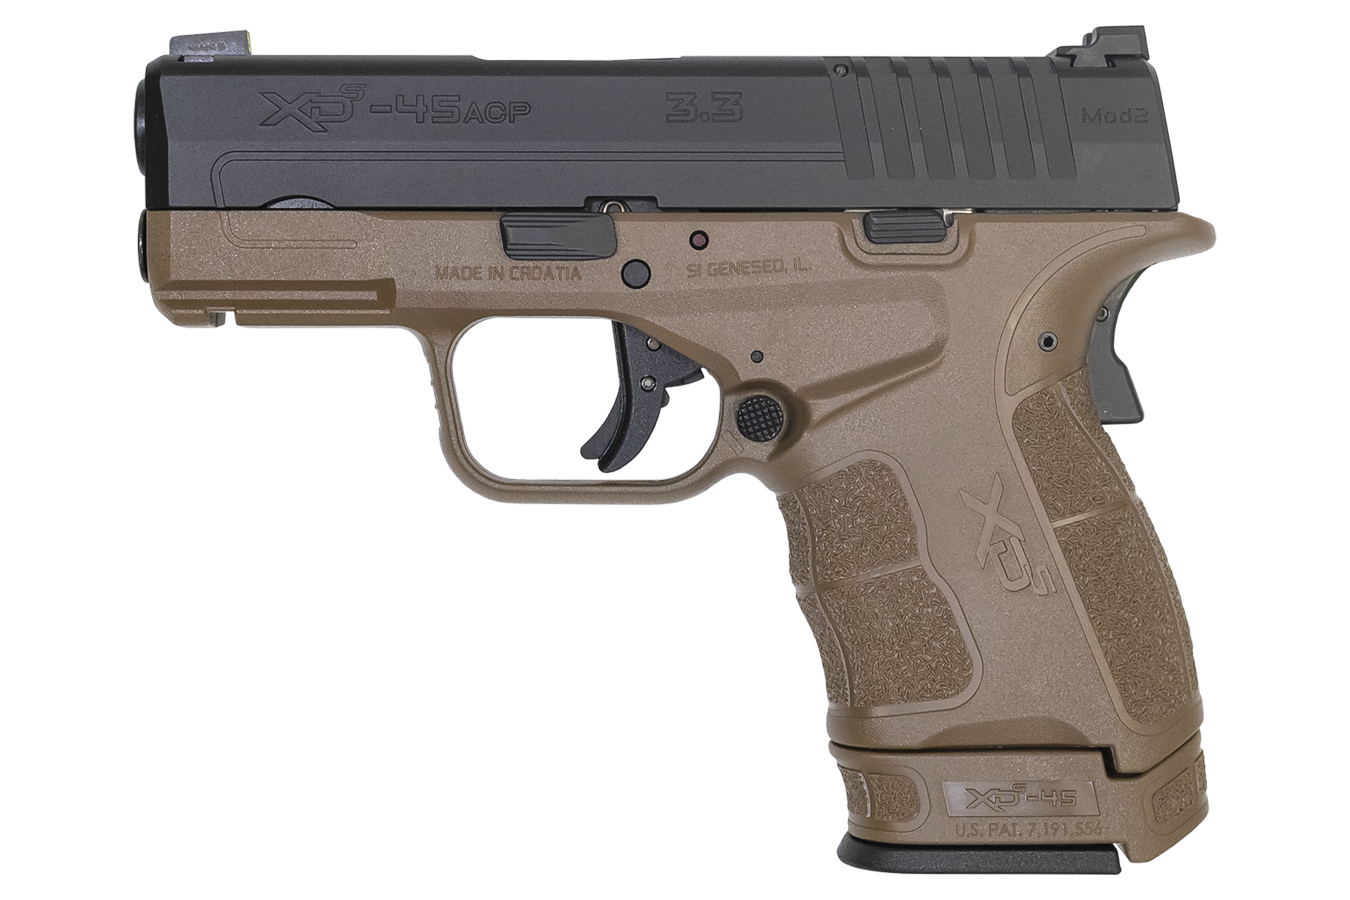 XDS MOD 2 45 ACP 3.3 IN BARREL FDE FRAME BLACK SLIDE TRITIUM FRONT SIGHT